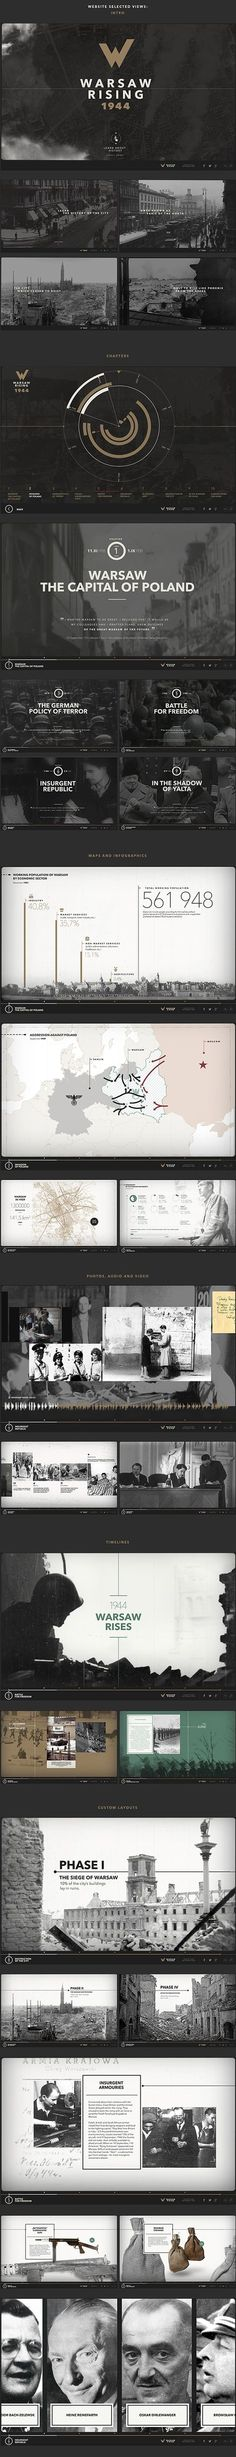 Love this simple design and dim use of colors. Warsaw Rising on Behance